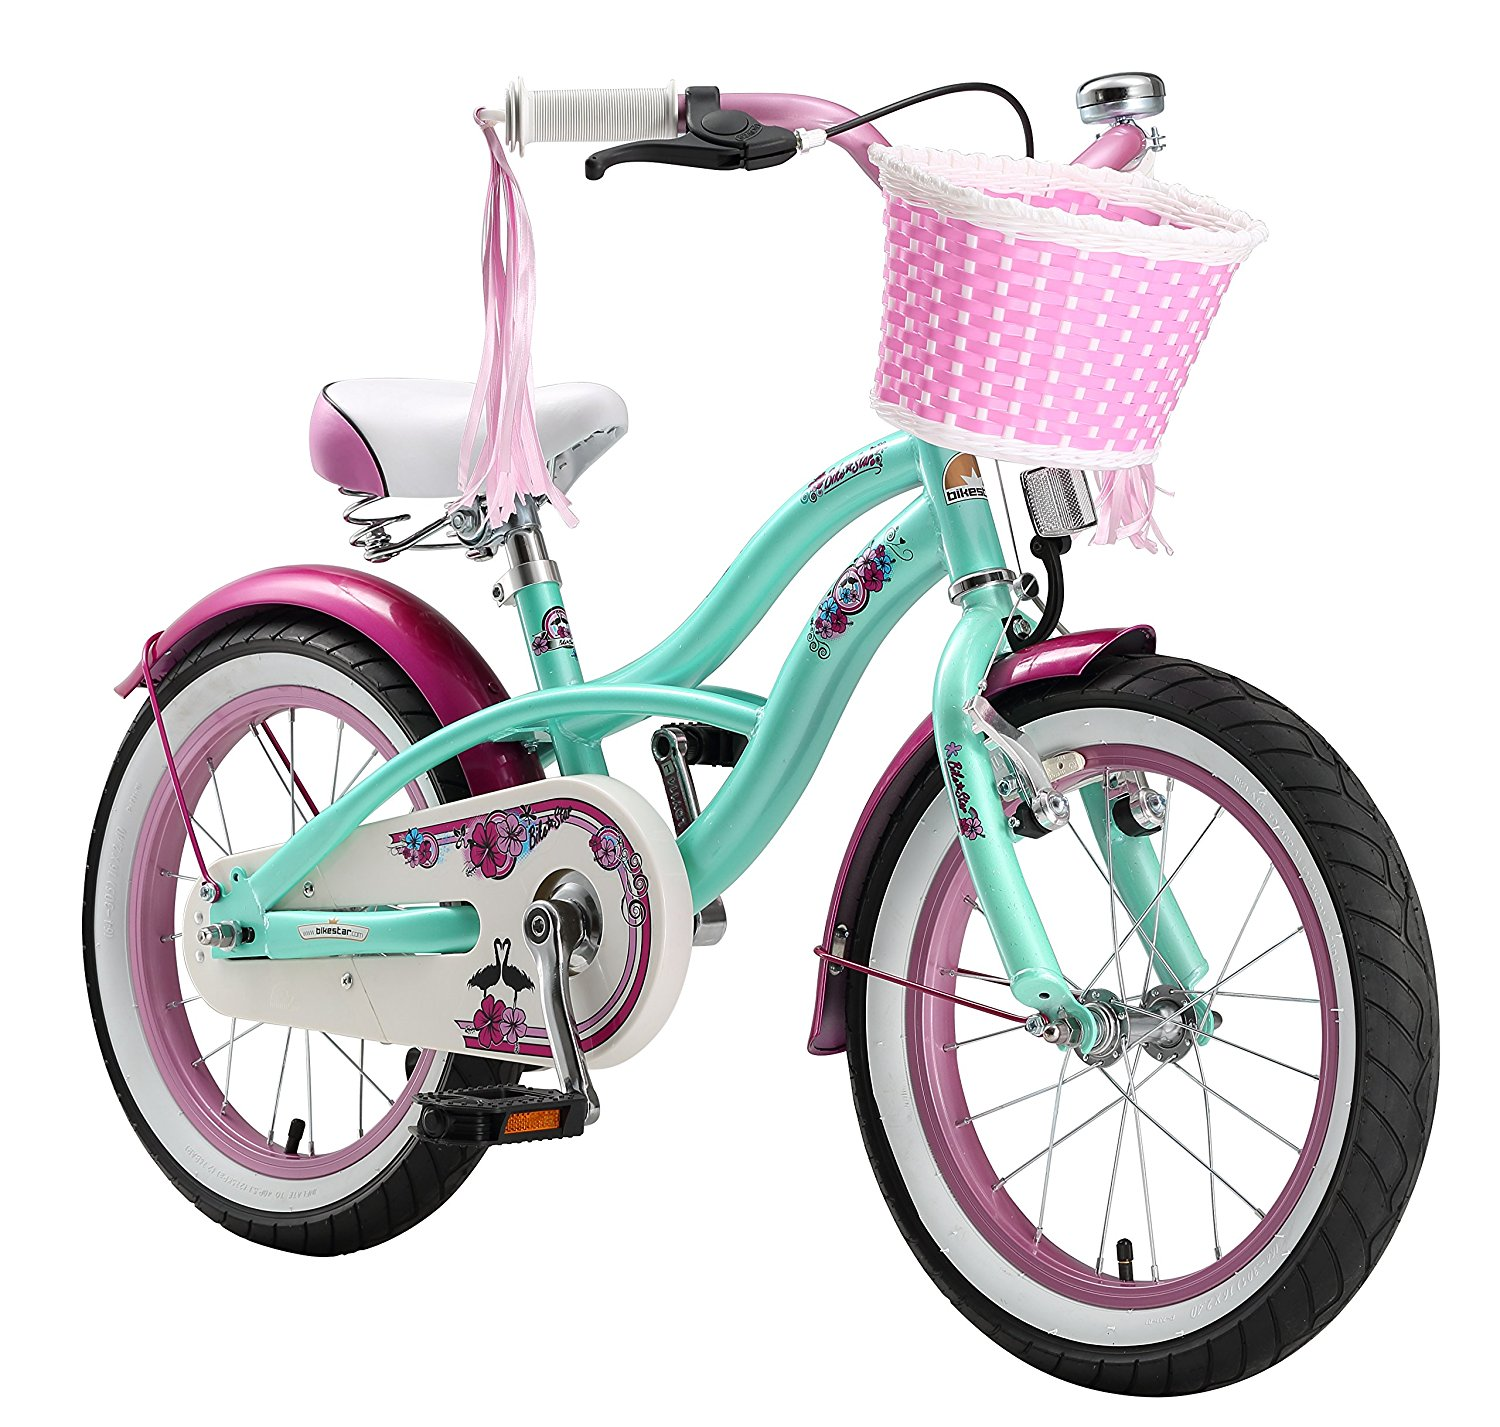 BIKESTAR? Original Premium Safety Sport Kids Bike Bicycle with sidestand and accessories for age 4 year old children | 16 Inch Cruiser Edition for girls/boys | Peppermint